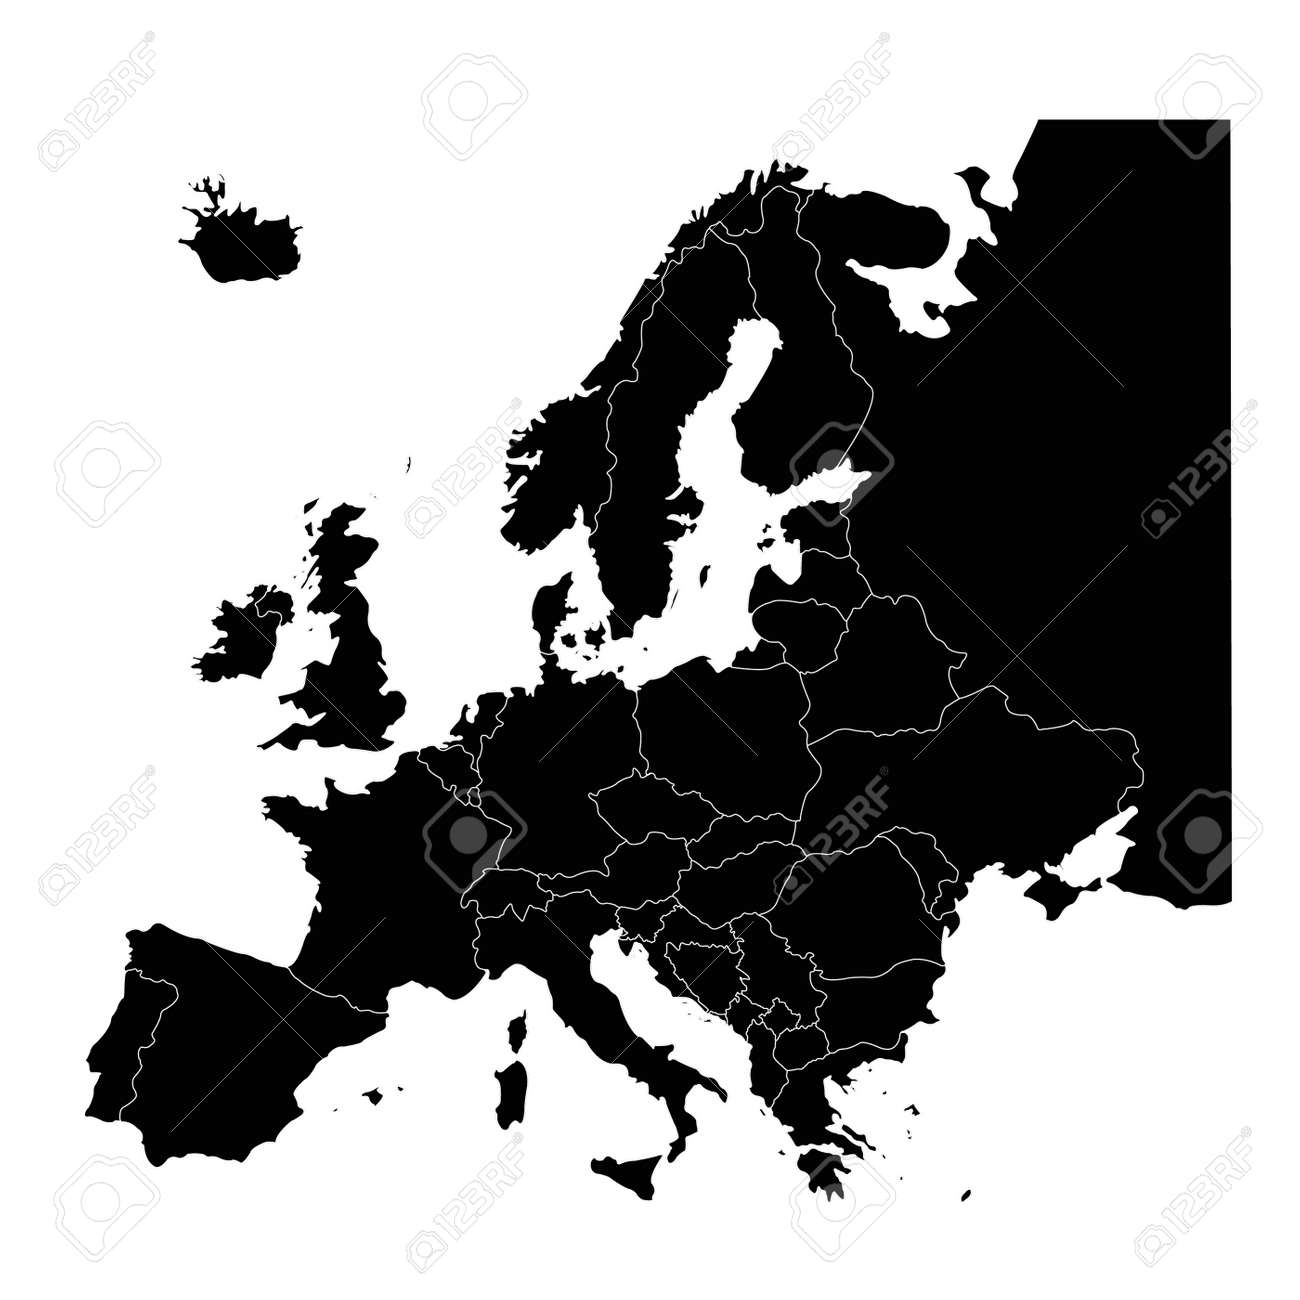 vector illustration of European countries map - 141932715